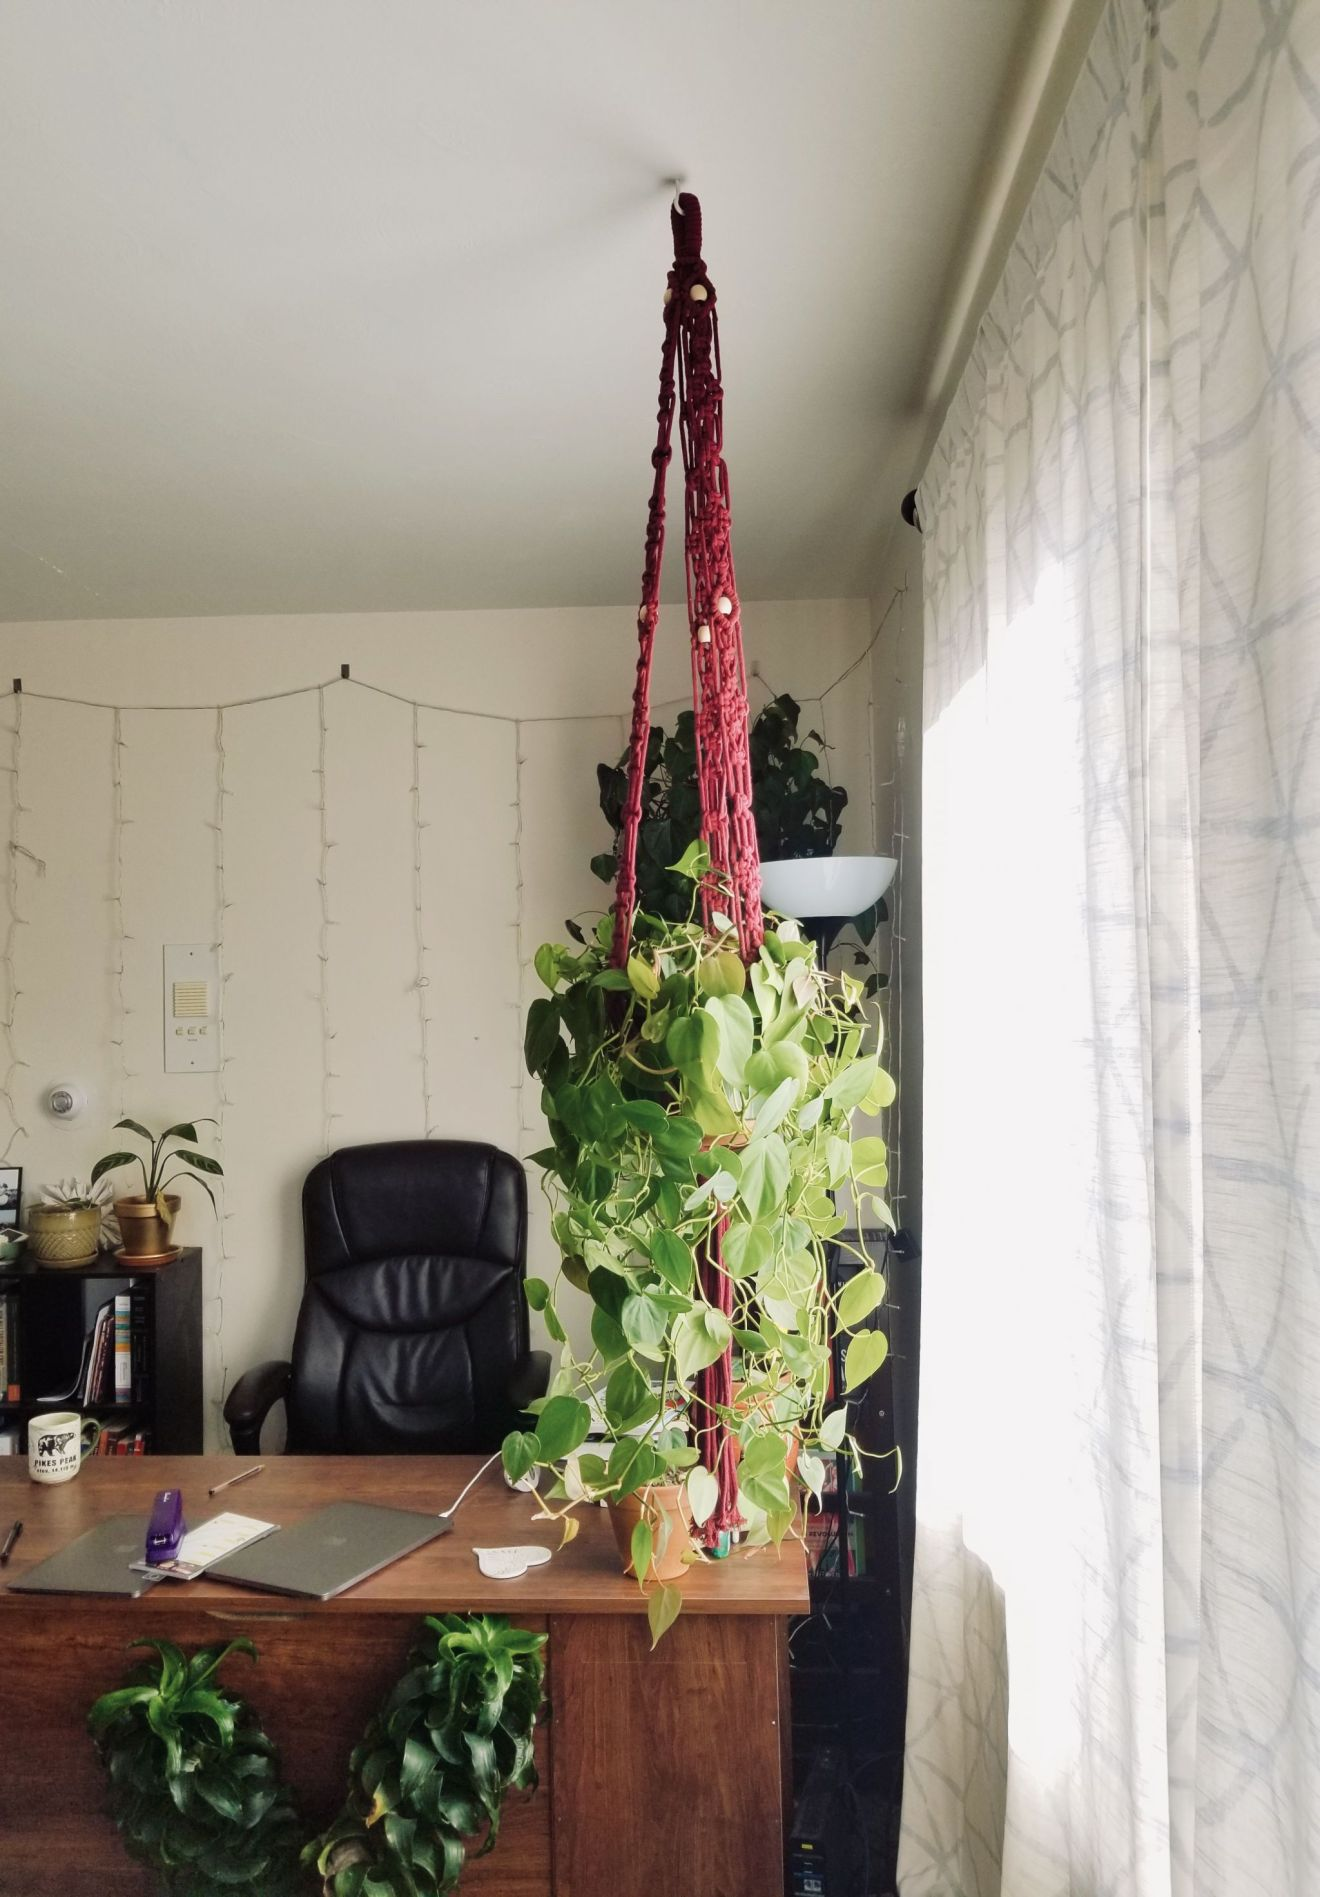 Macrame plant hanger with heart shaped philodendron